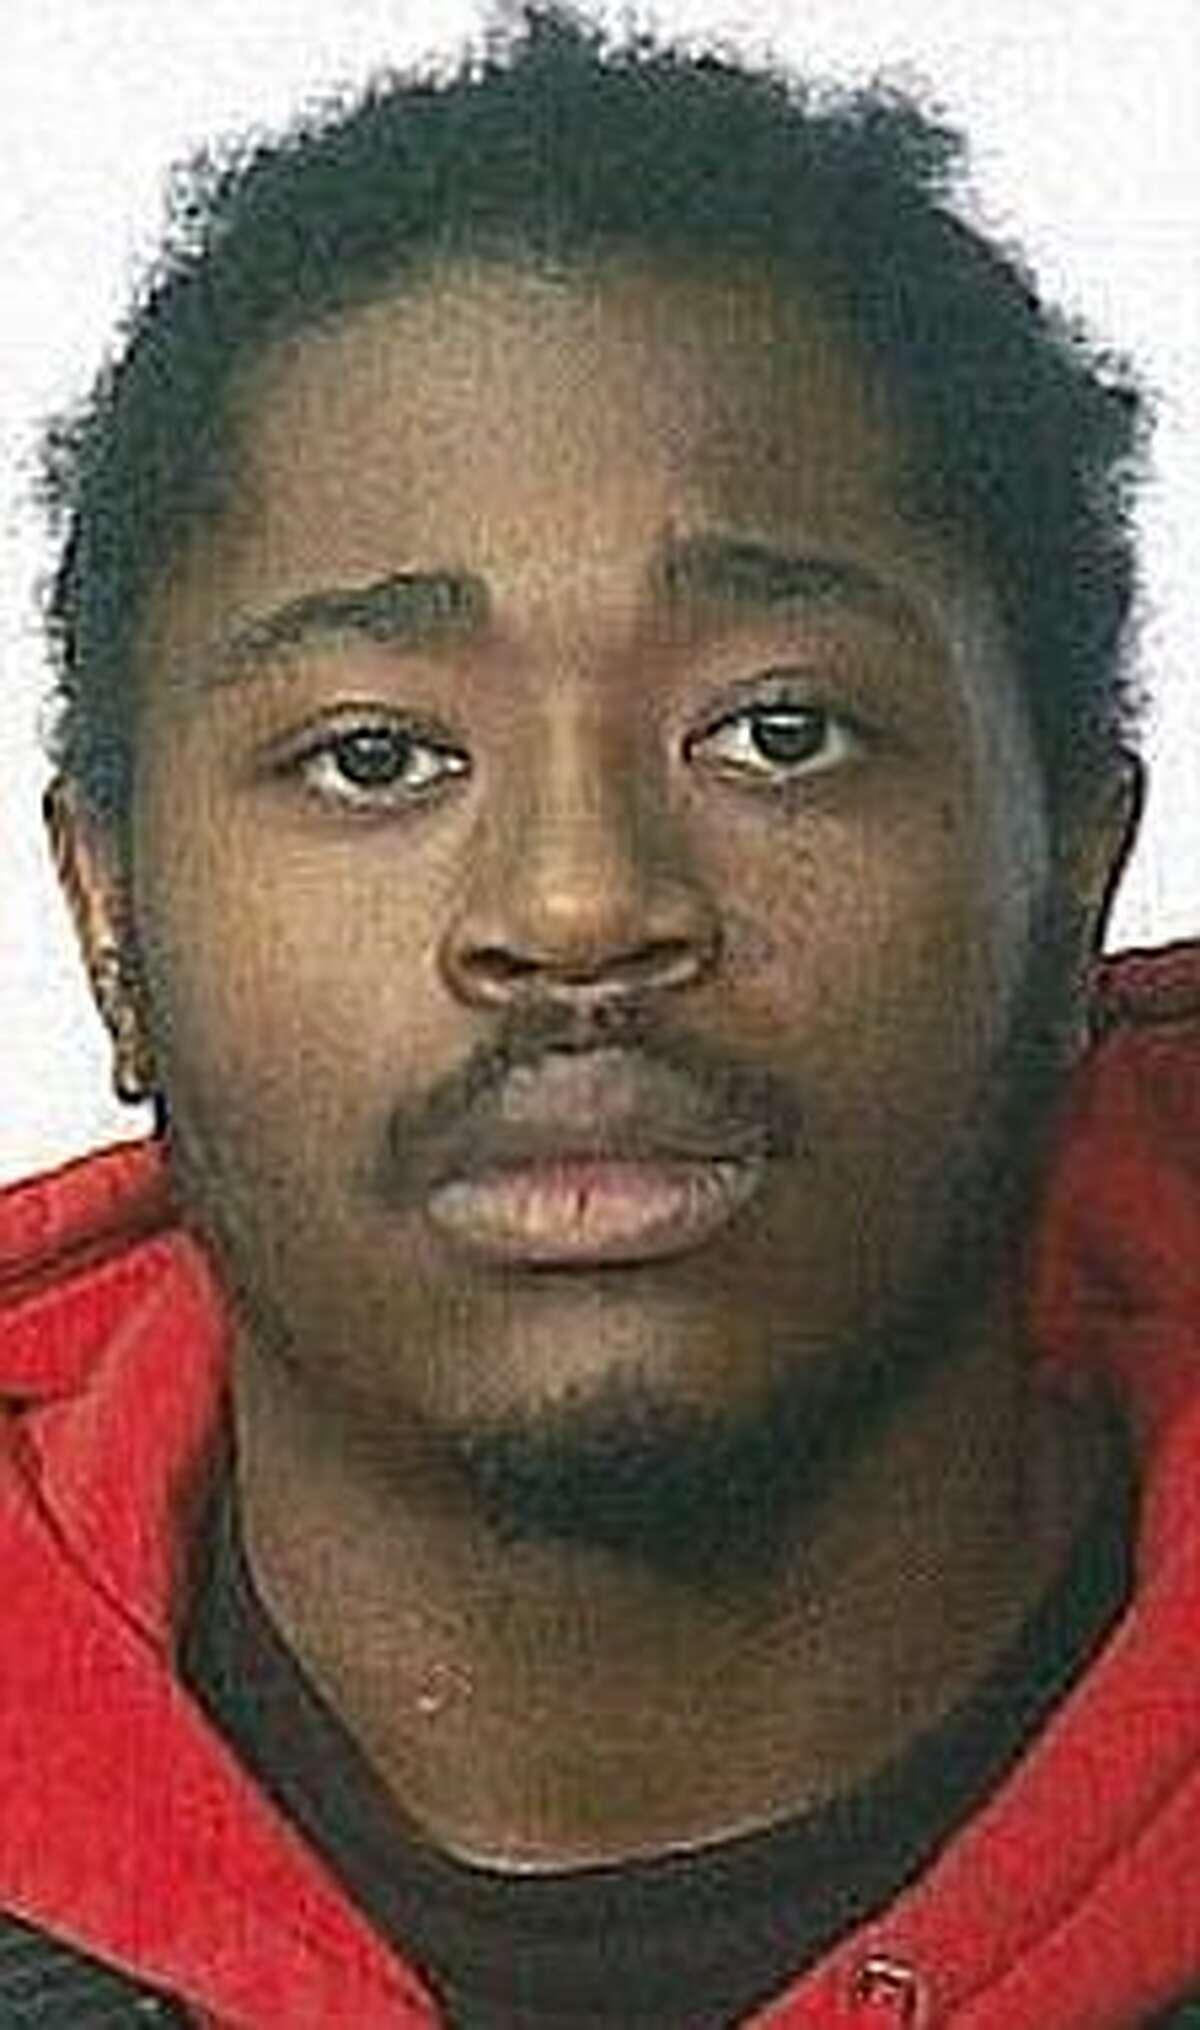 Djavan Perry, 20, of Brooklyn, was captured by U.S. marshals Tuesday morning, May 3, 2011, in Albany, to face allegations that he killed another man in Brooklyn on April 17, 2011. The shooting was caught by a security camera in the apartment building. The shooting killed Andre Pitts, 18, also of Brooklyn. (Albany Police Department)